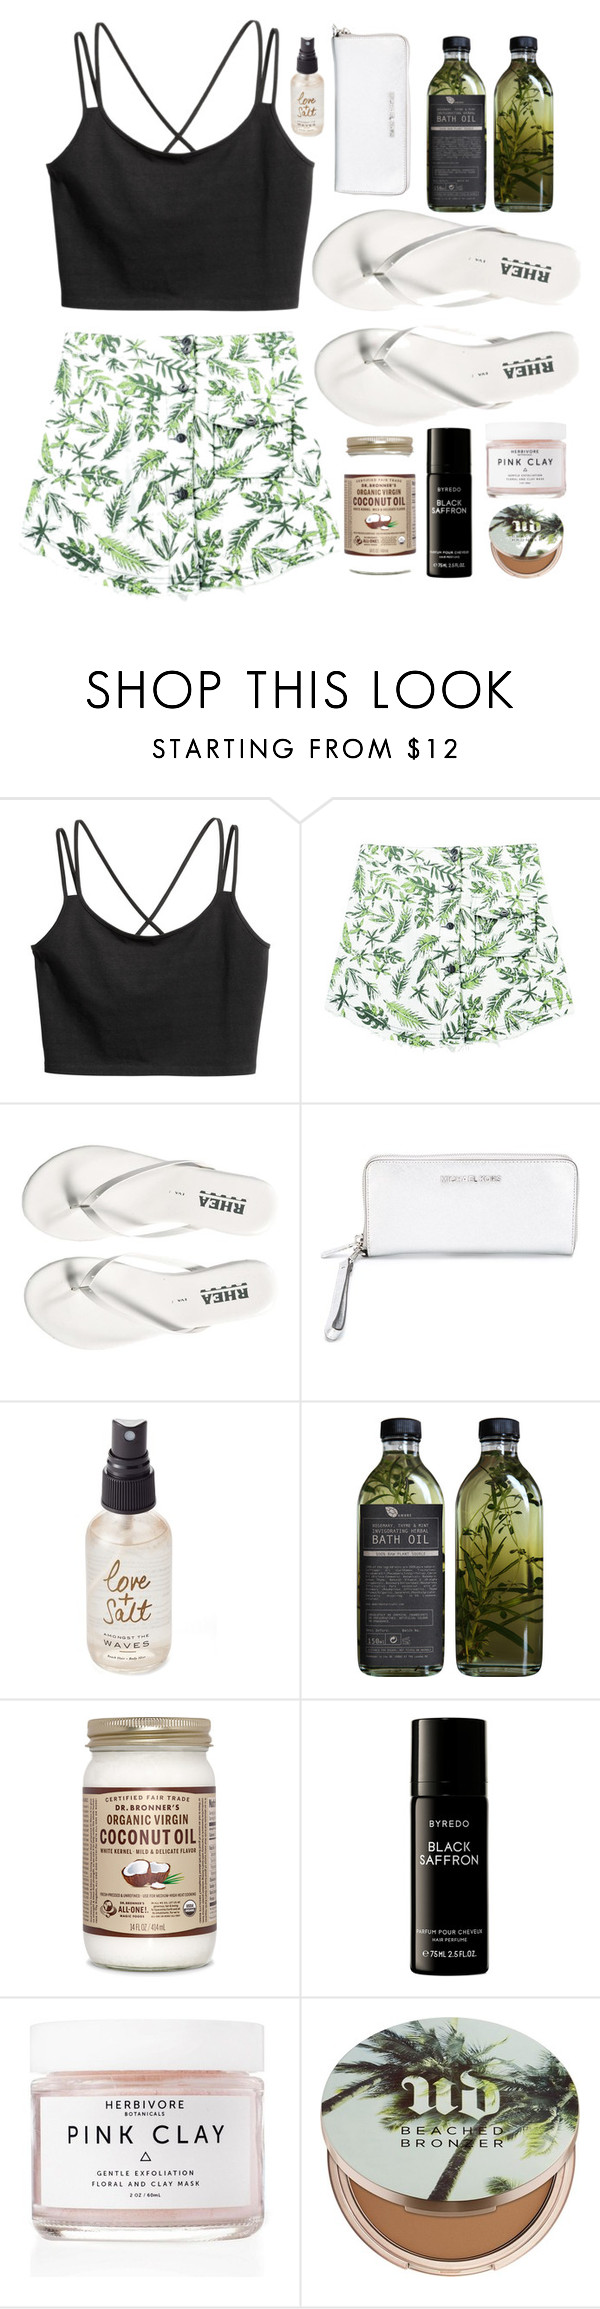 """Untitled #362"" by designer-mae ❤ liked on Polyvore featuring Chicnova Fashion, MICHAEL Michael Kors, Olivine, AMBRE, Byredo, Herbivore, Urban Decay and DesignerMaeTaglist"